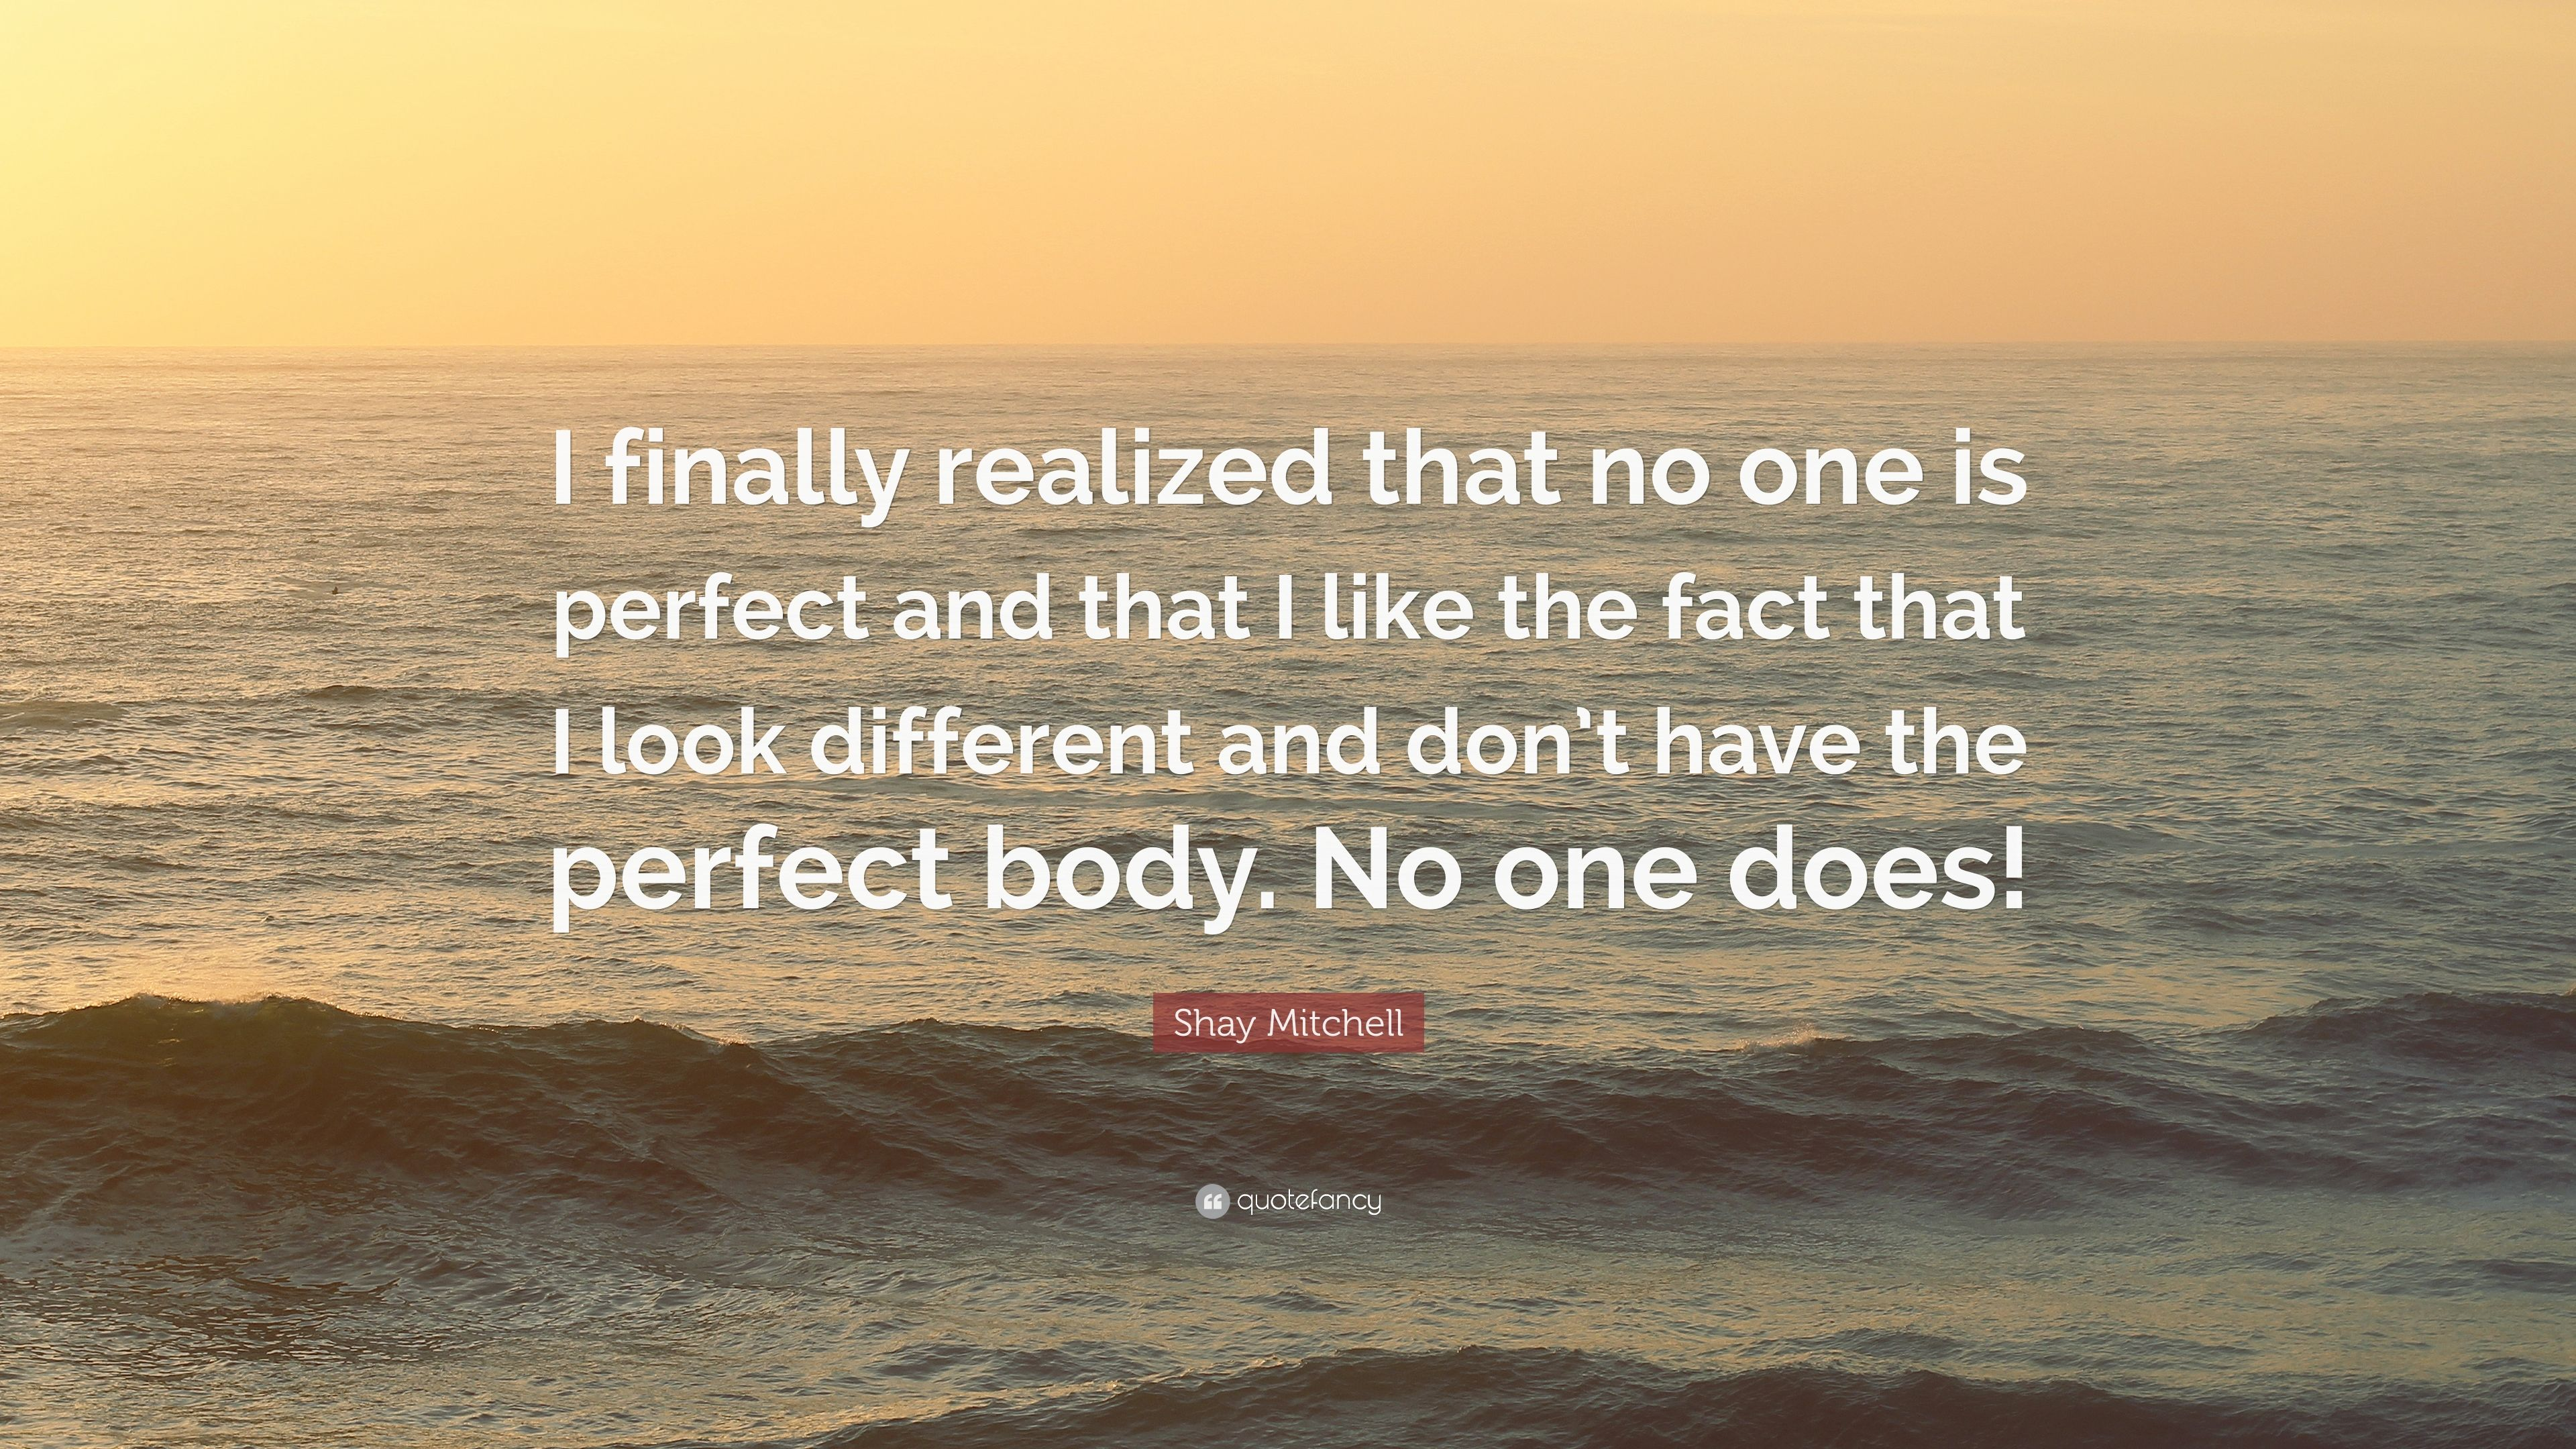 Body no one is perfect